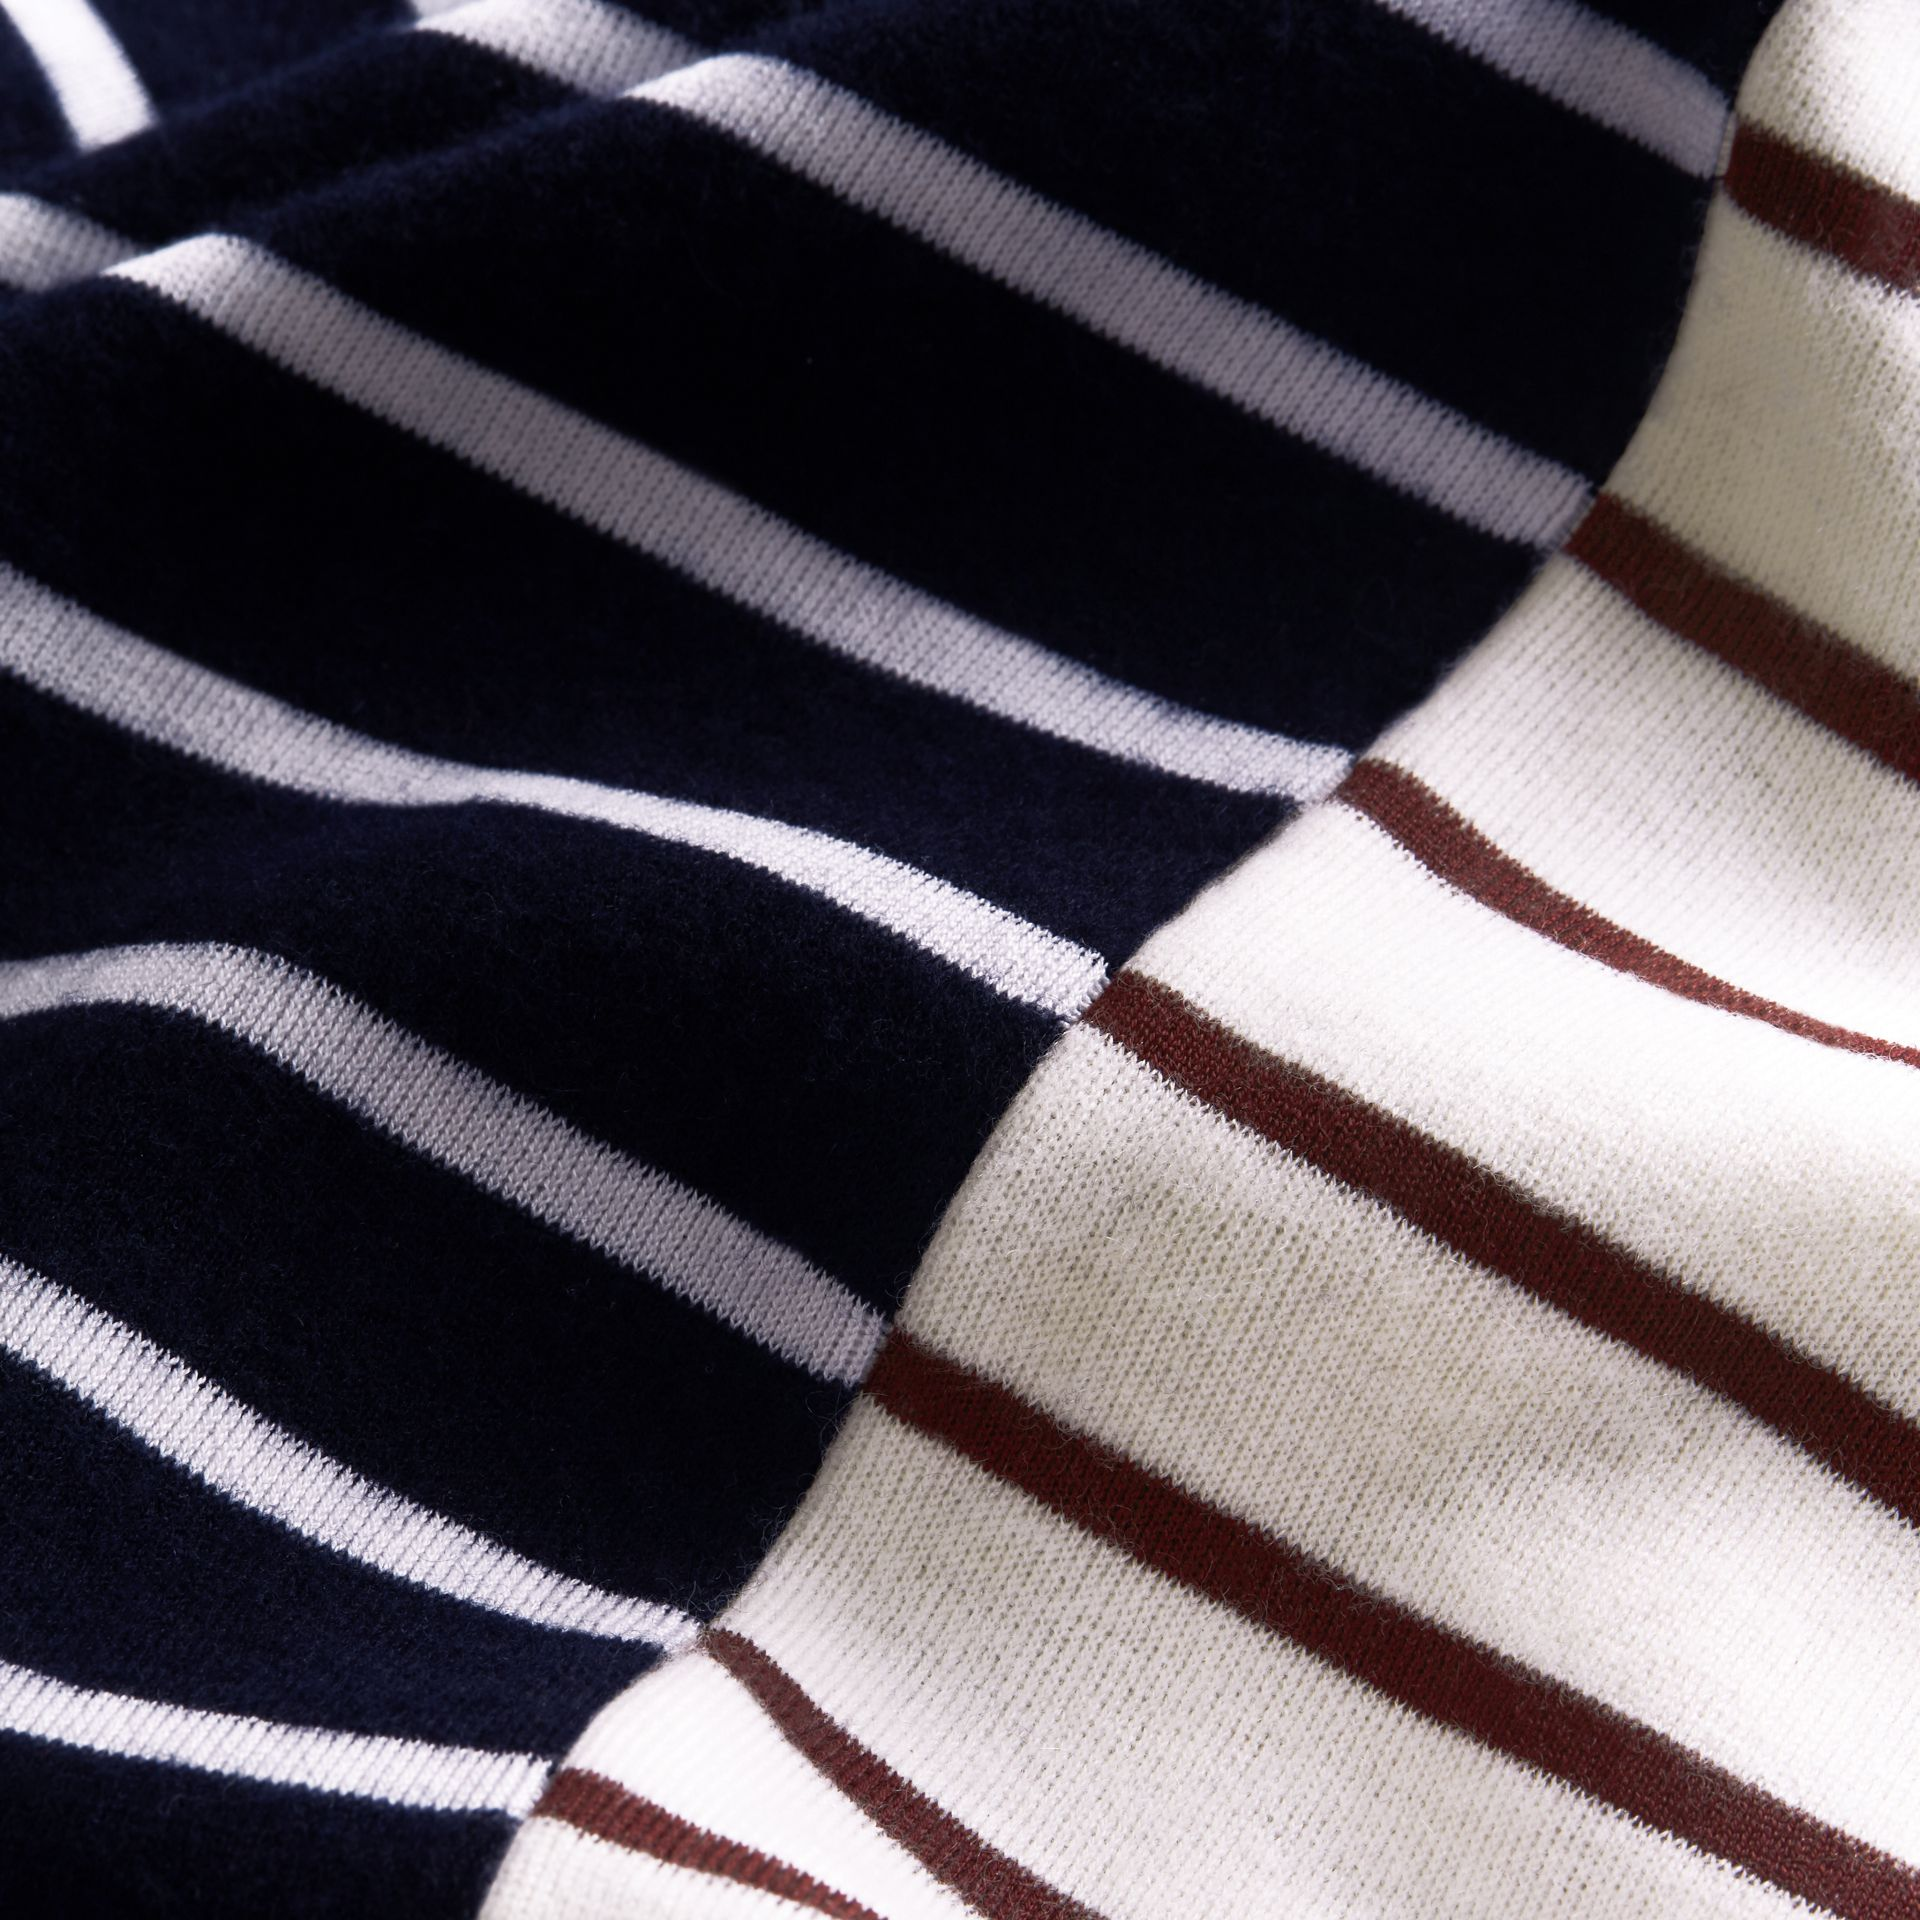 Contrast Stripe Cashmere Blend Sweater - Men | Burberry - gallery image 2